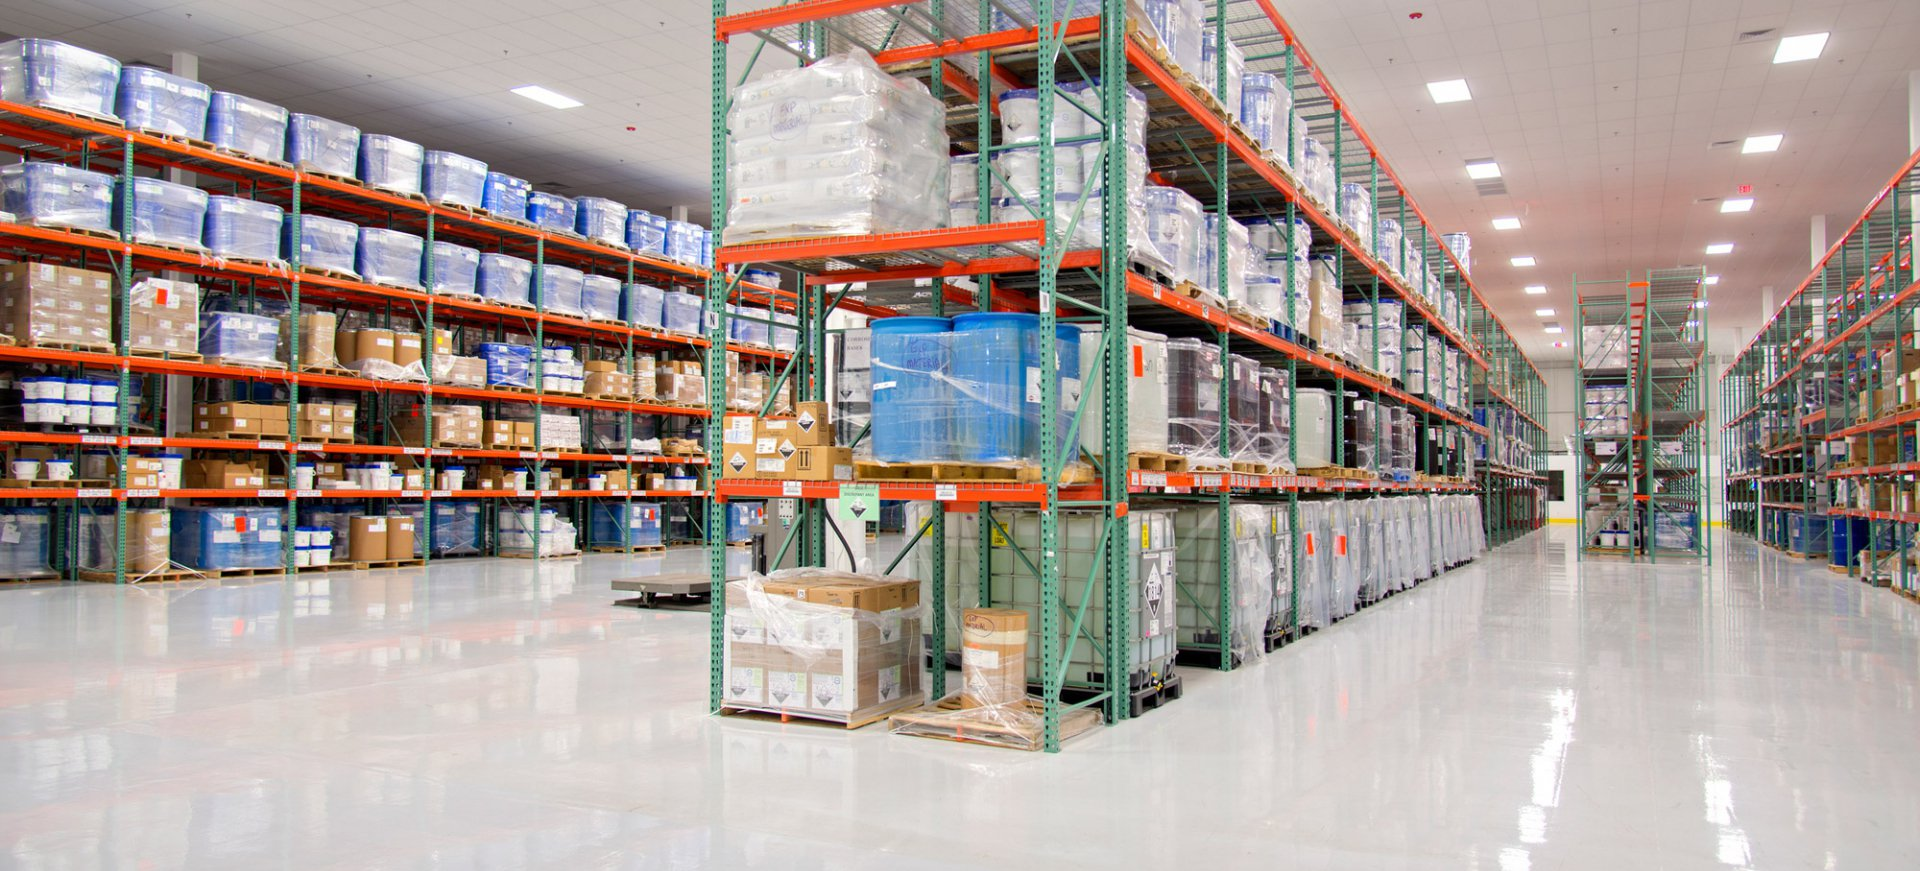 wholesale led lights supporting lighting suppliers kellwood lighting